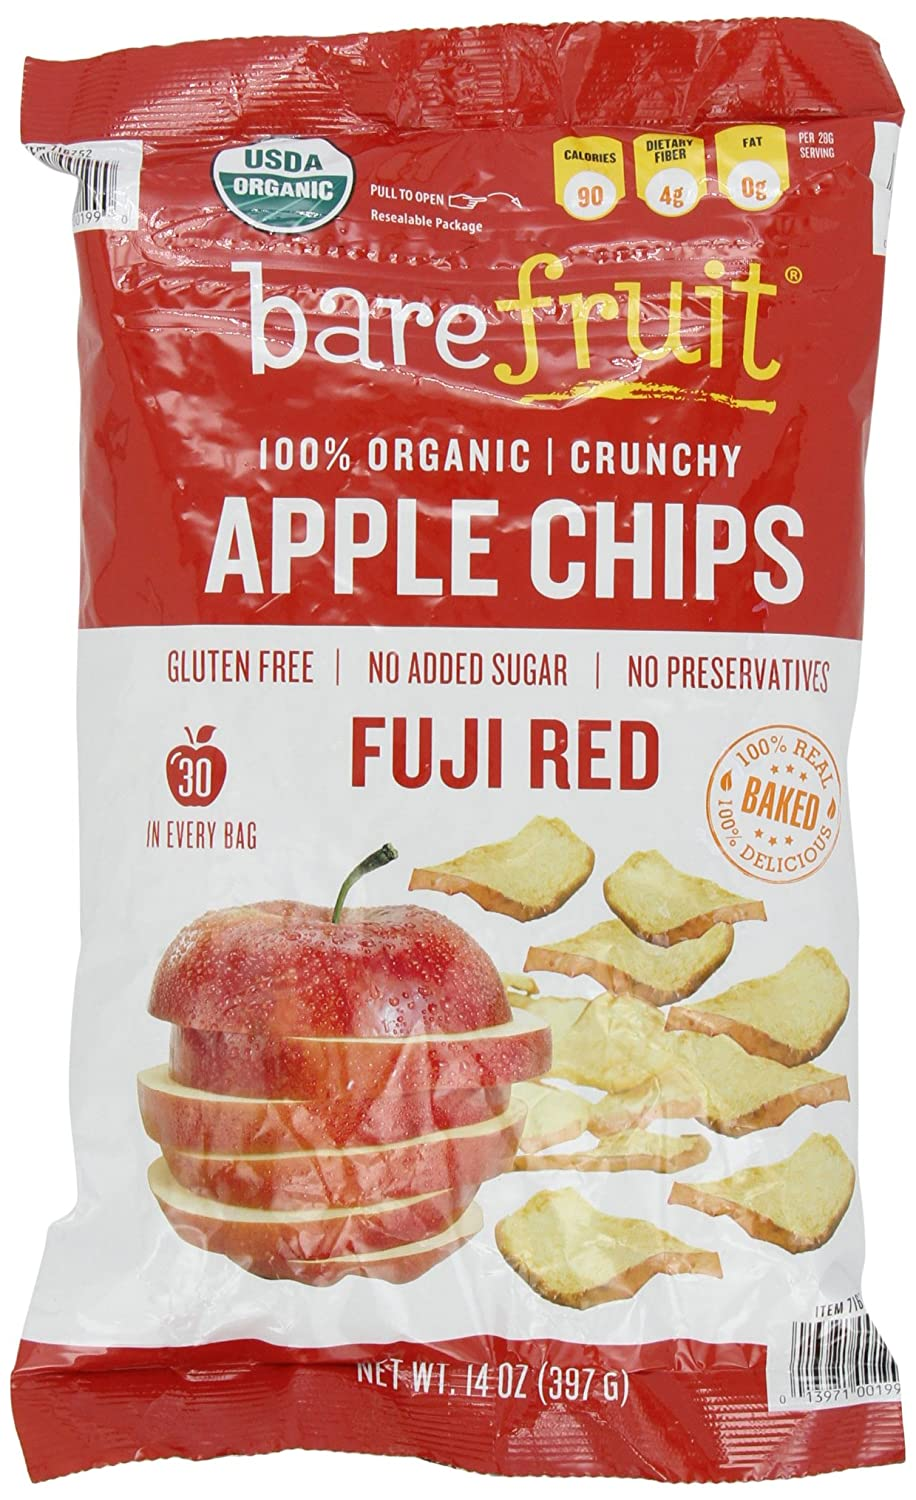 amazoncom bare organic fuji apple chips glutenfree baked 14ounce bag pack of 2